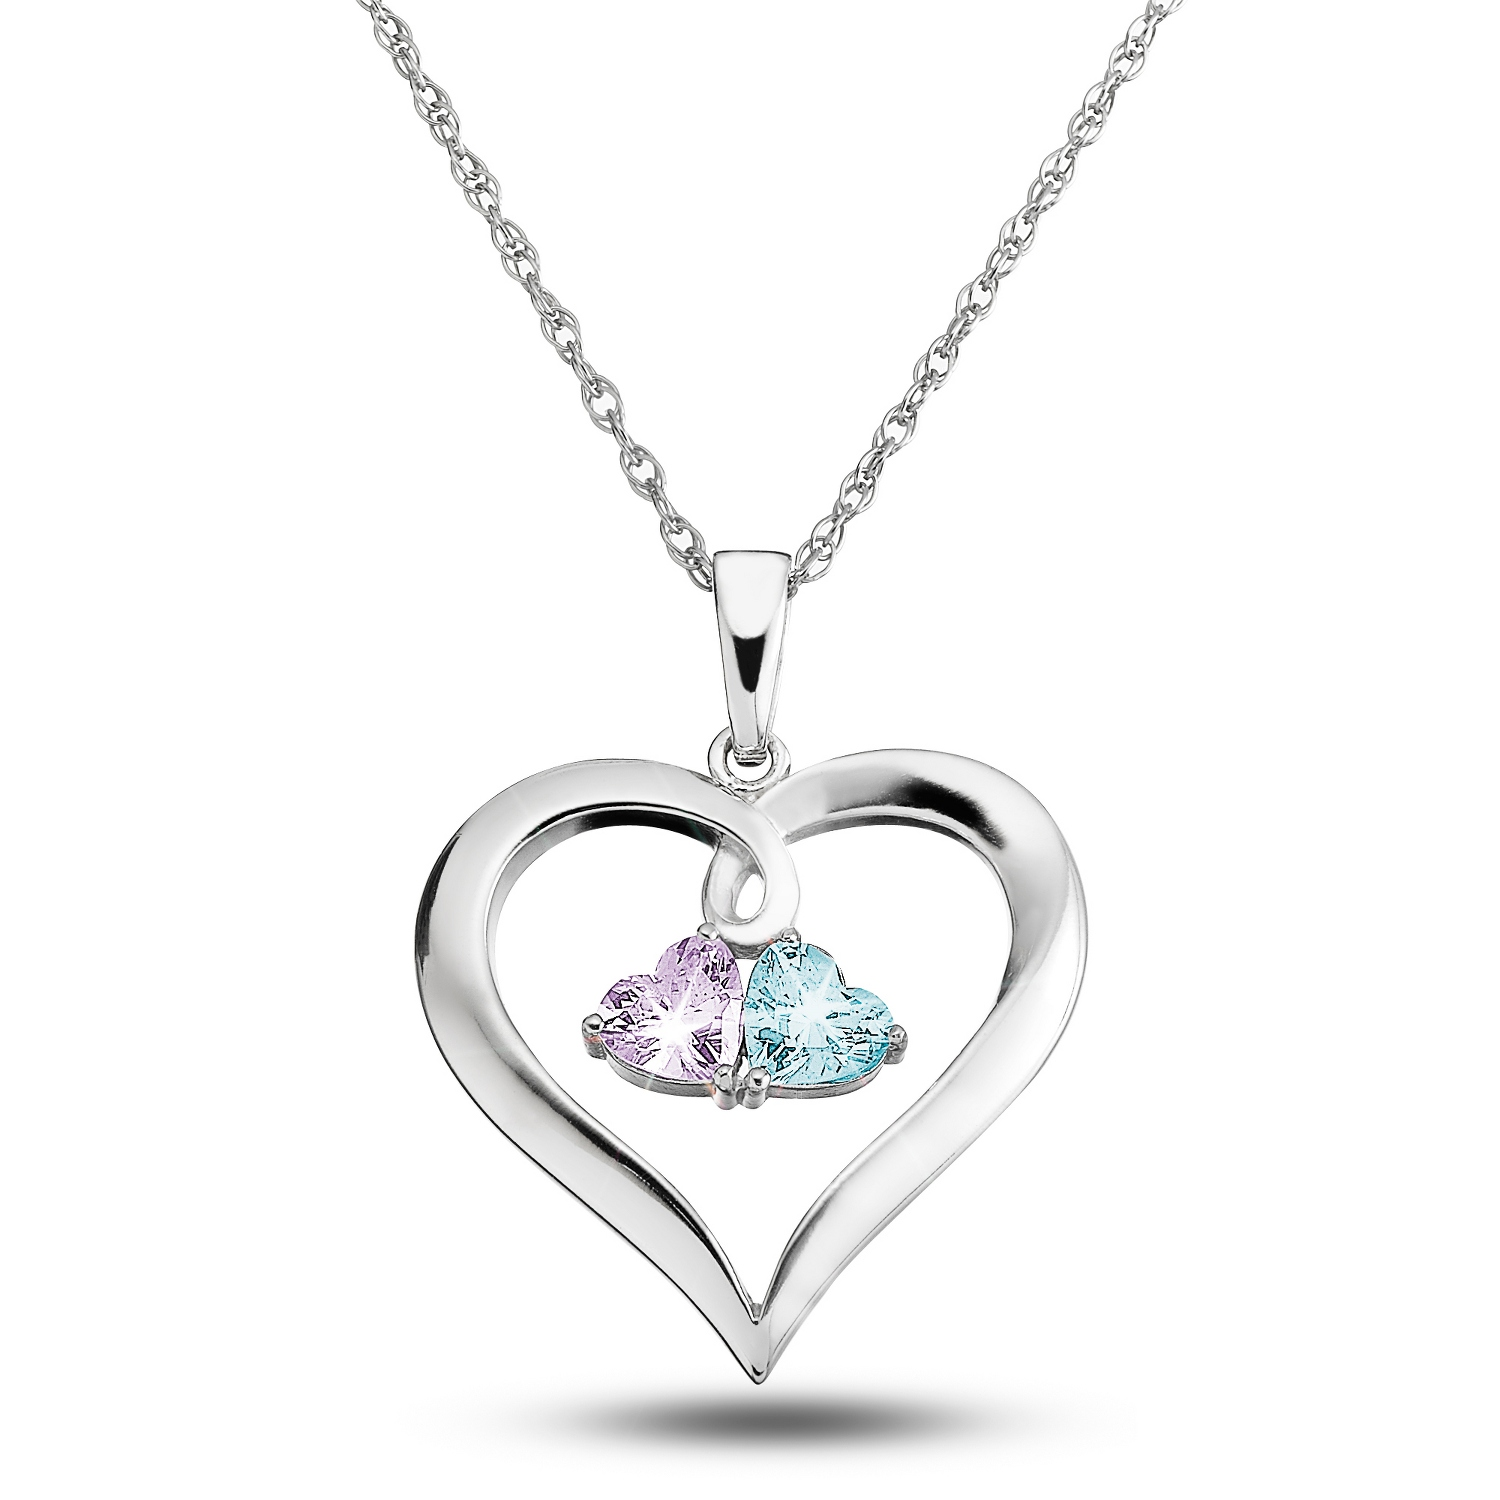 1b4957403a Sterling Silver Couples Heart Birthstone Necklace